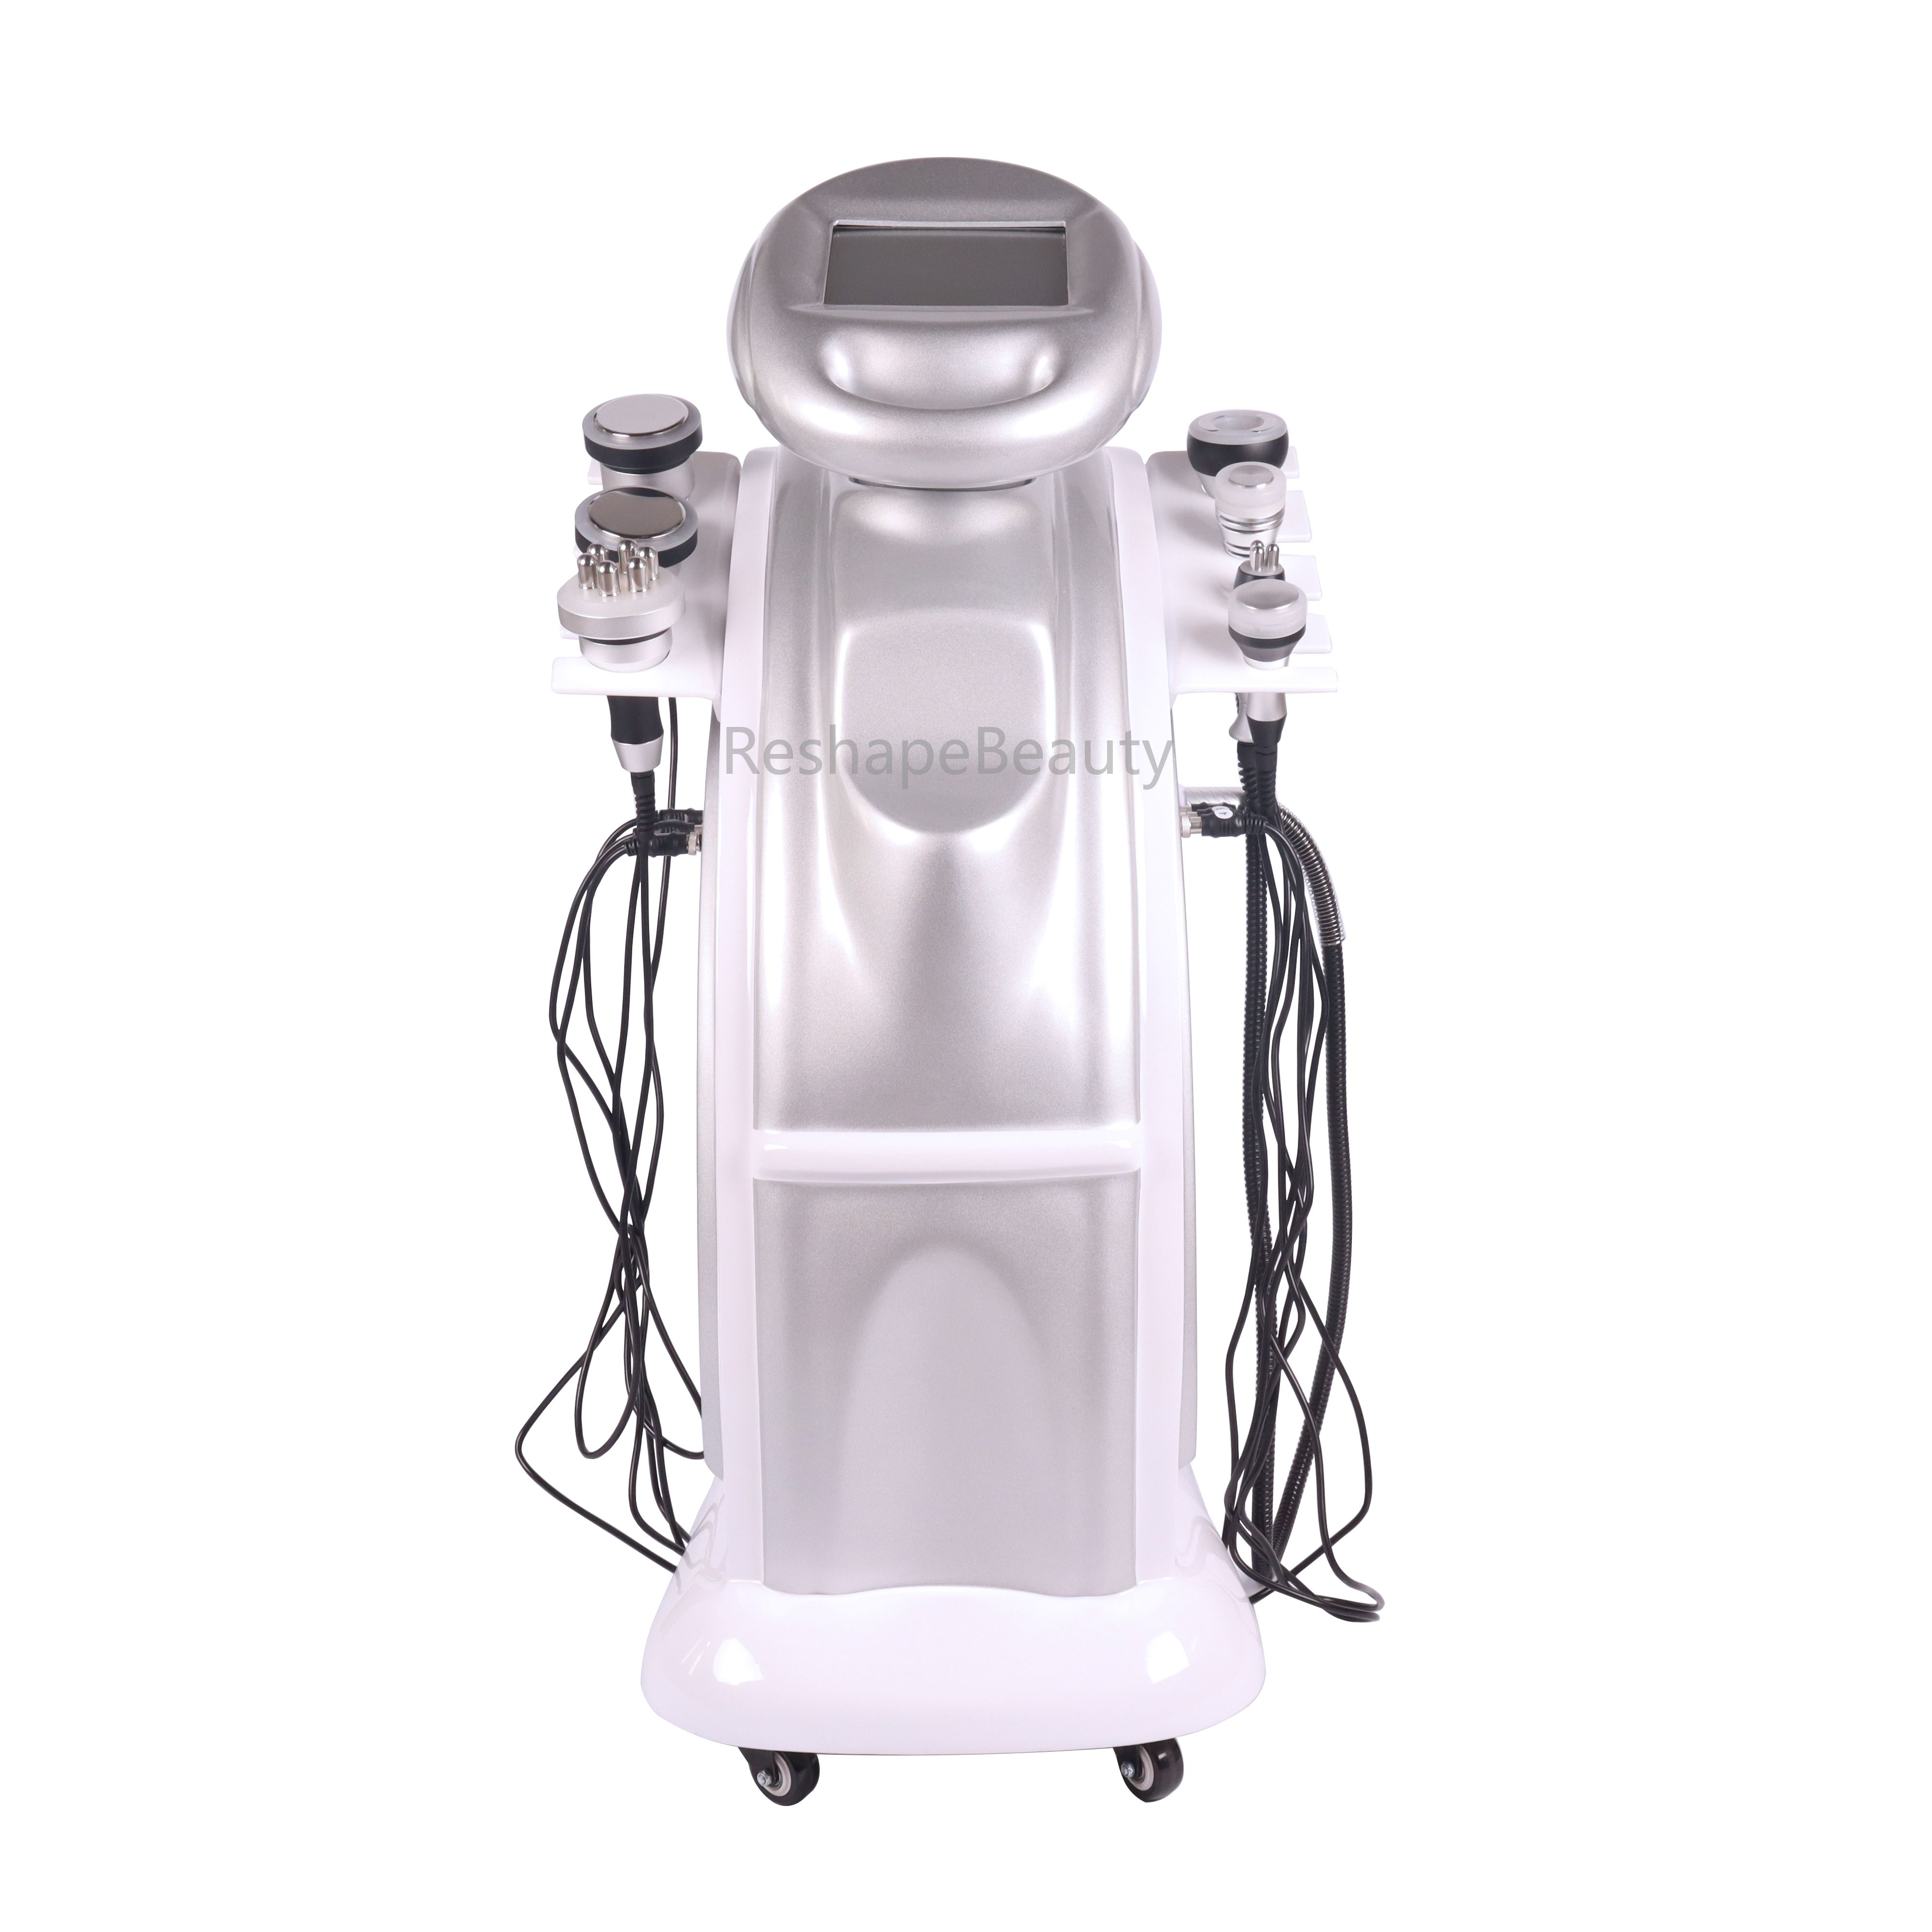 Newest 7 In 1 80K Cavitation Slimming Weight Loss Skin Tightening Improve Skin Cellulite Reduction Fat Removal Beauty Machine